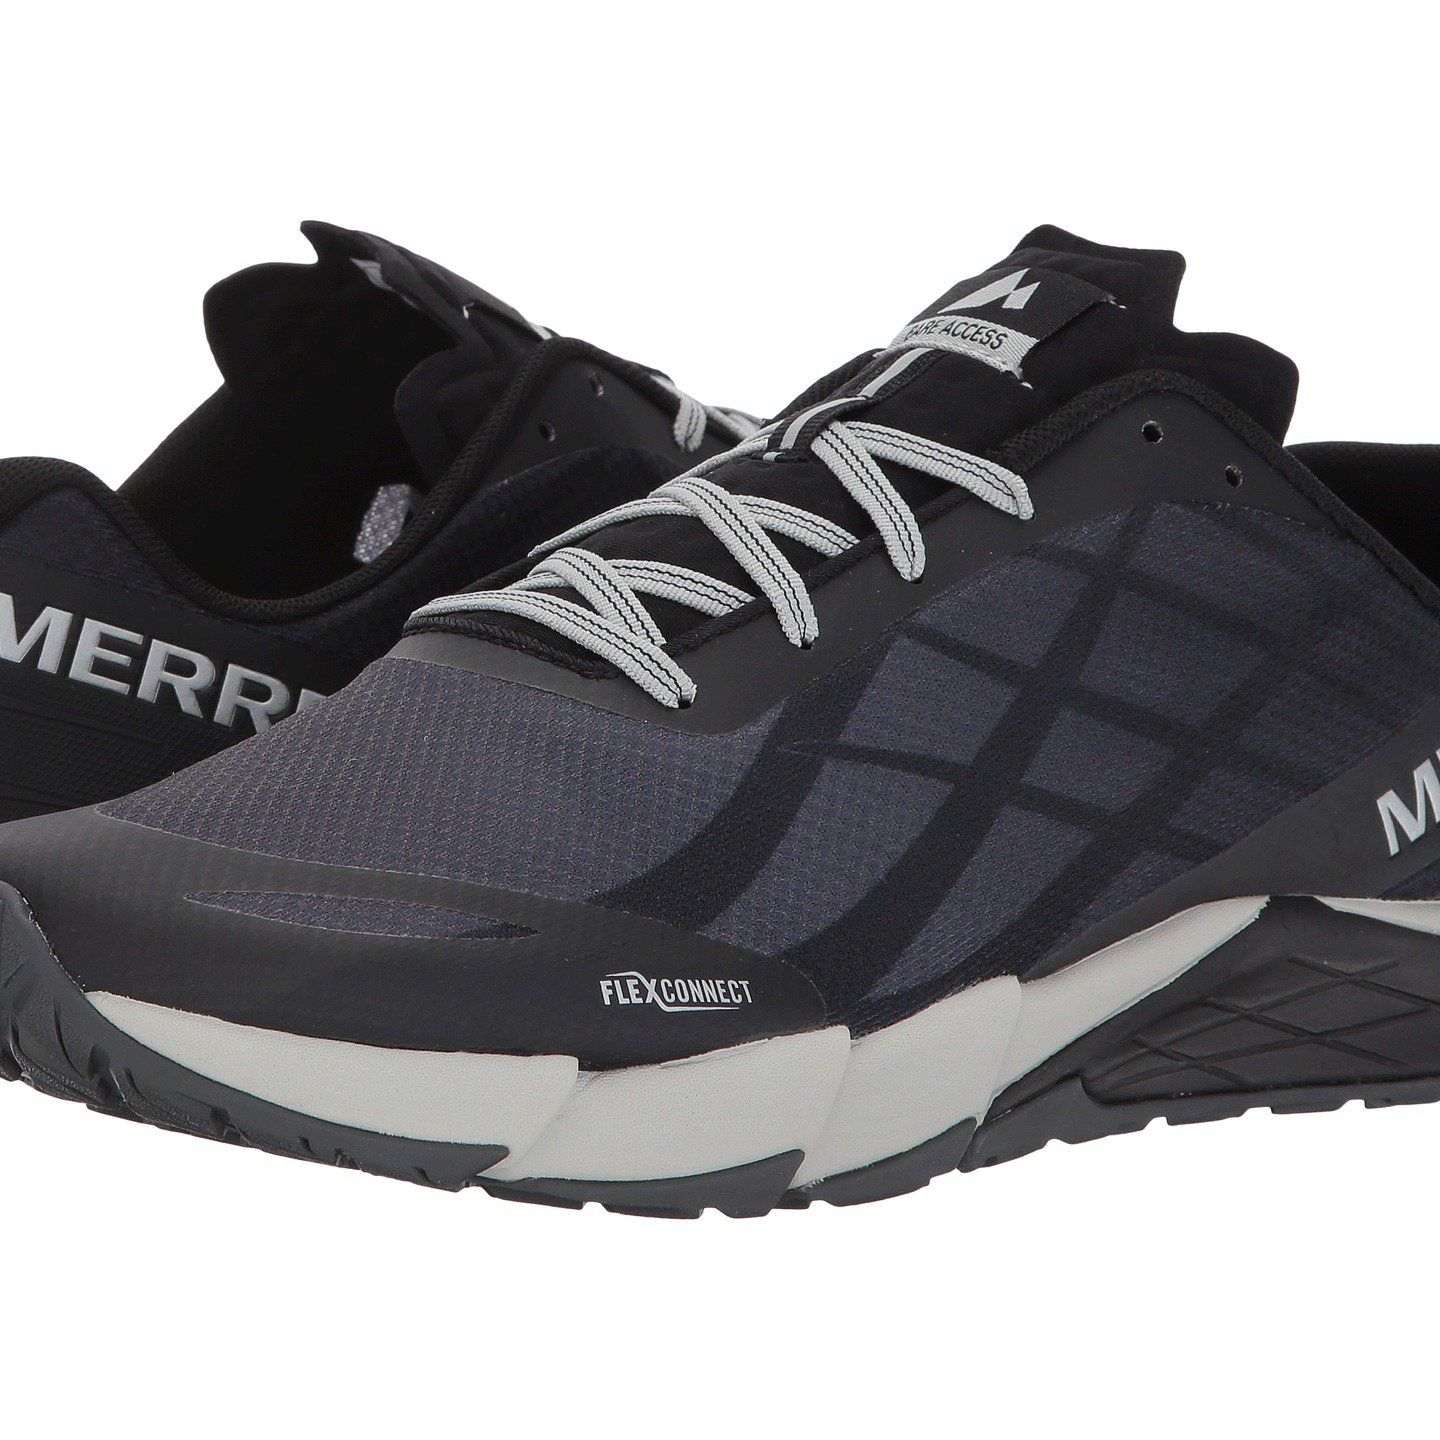 The 7 Best Crossfit Shoes For Men Of 2021